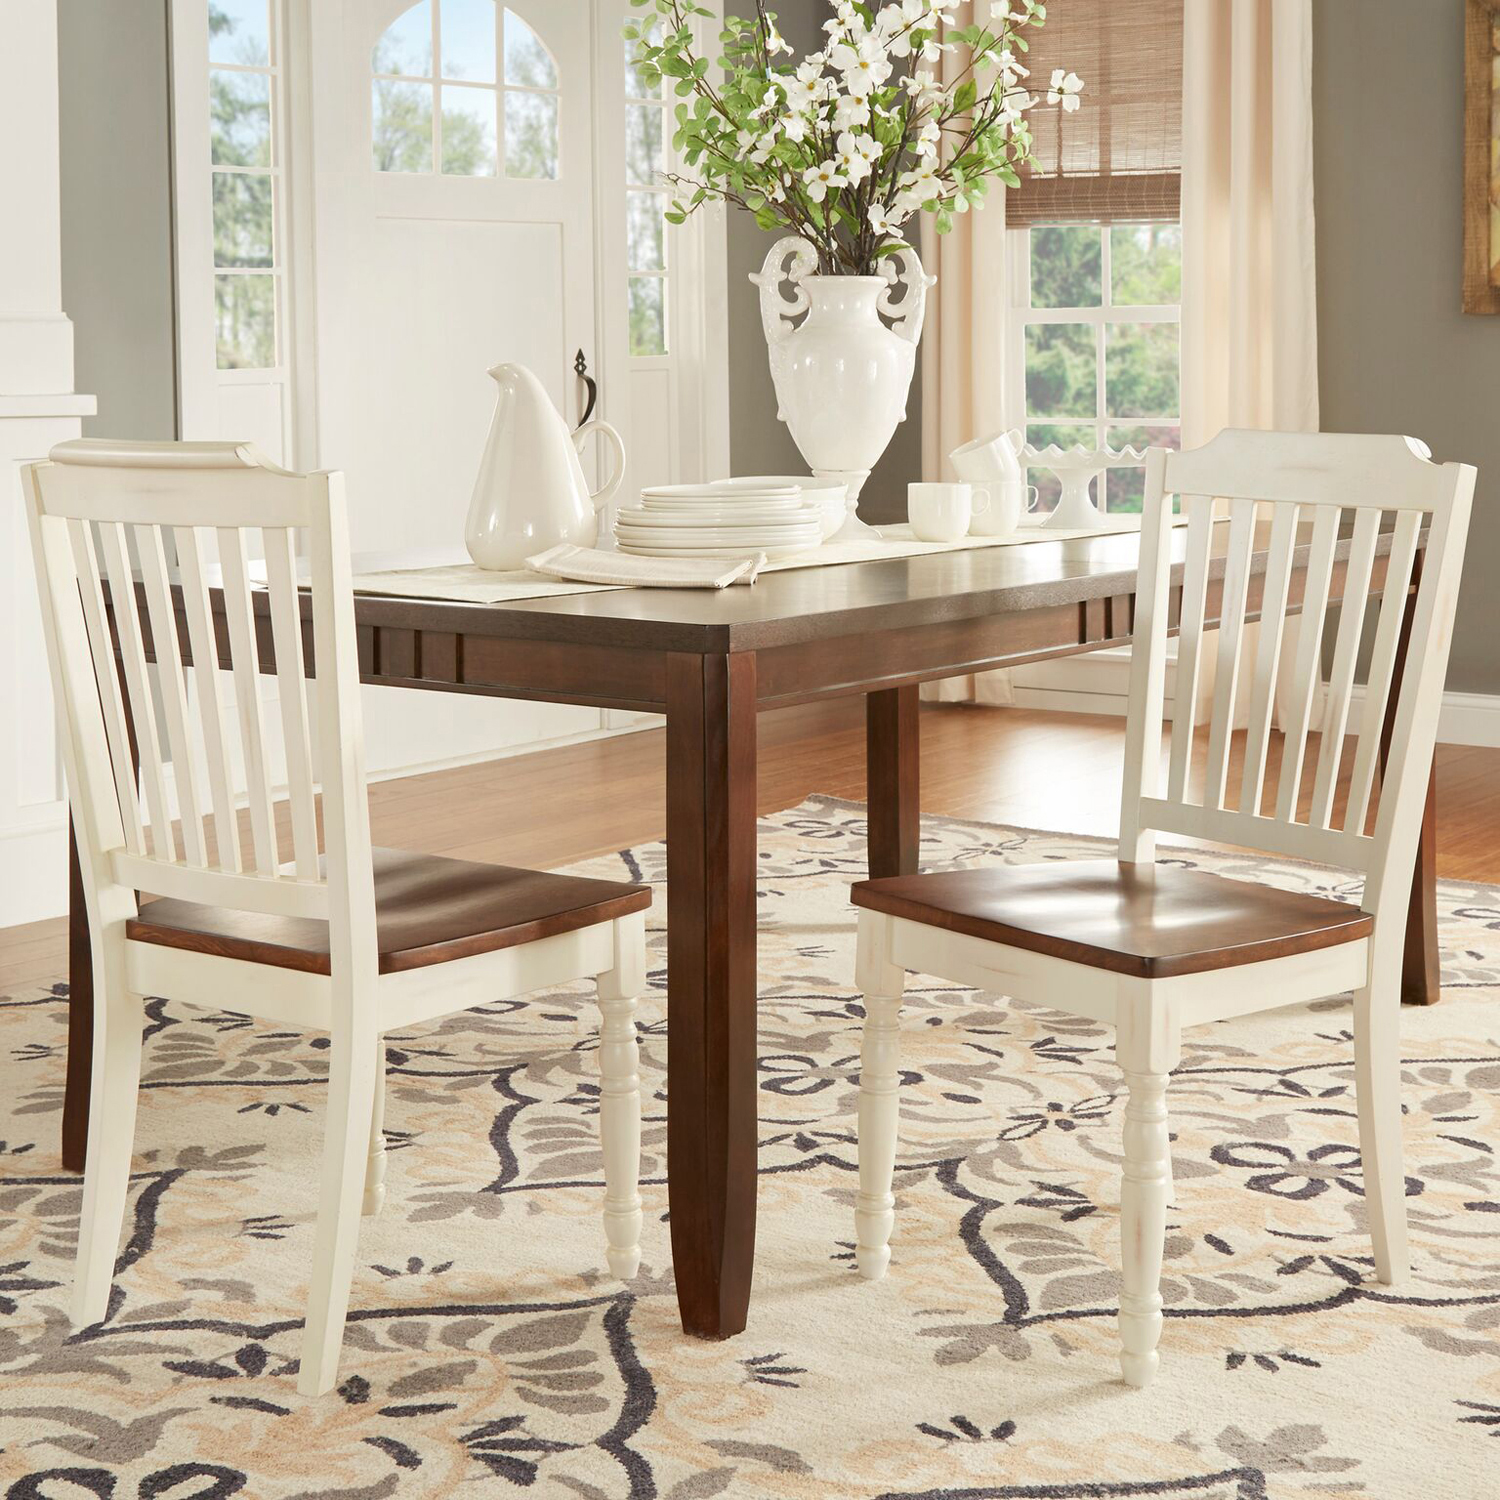 Antique White Dining Chairs Set of 2 - Pier1 Imports